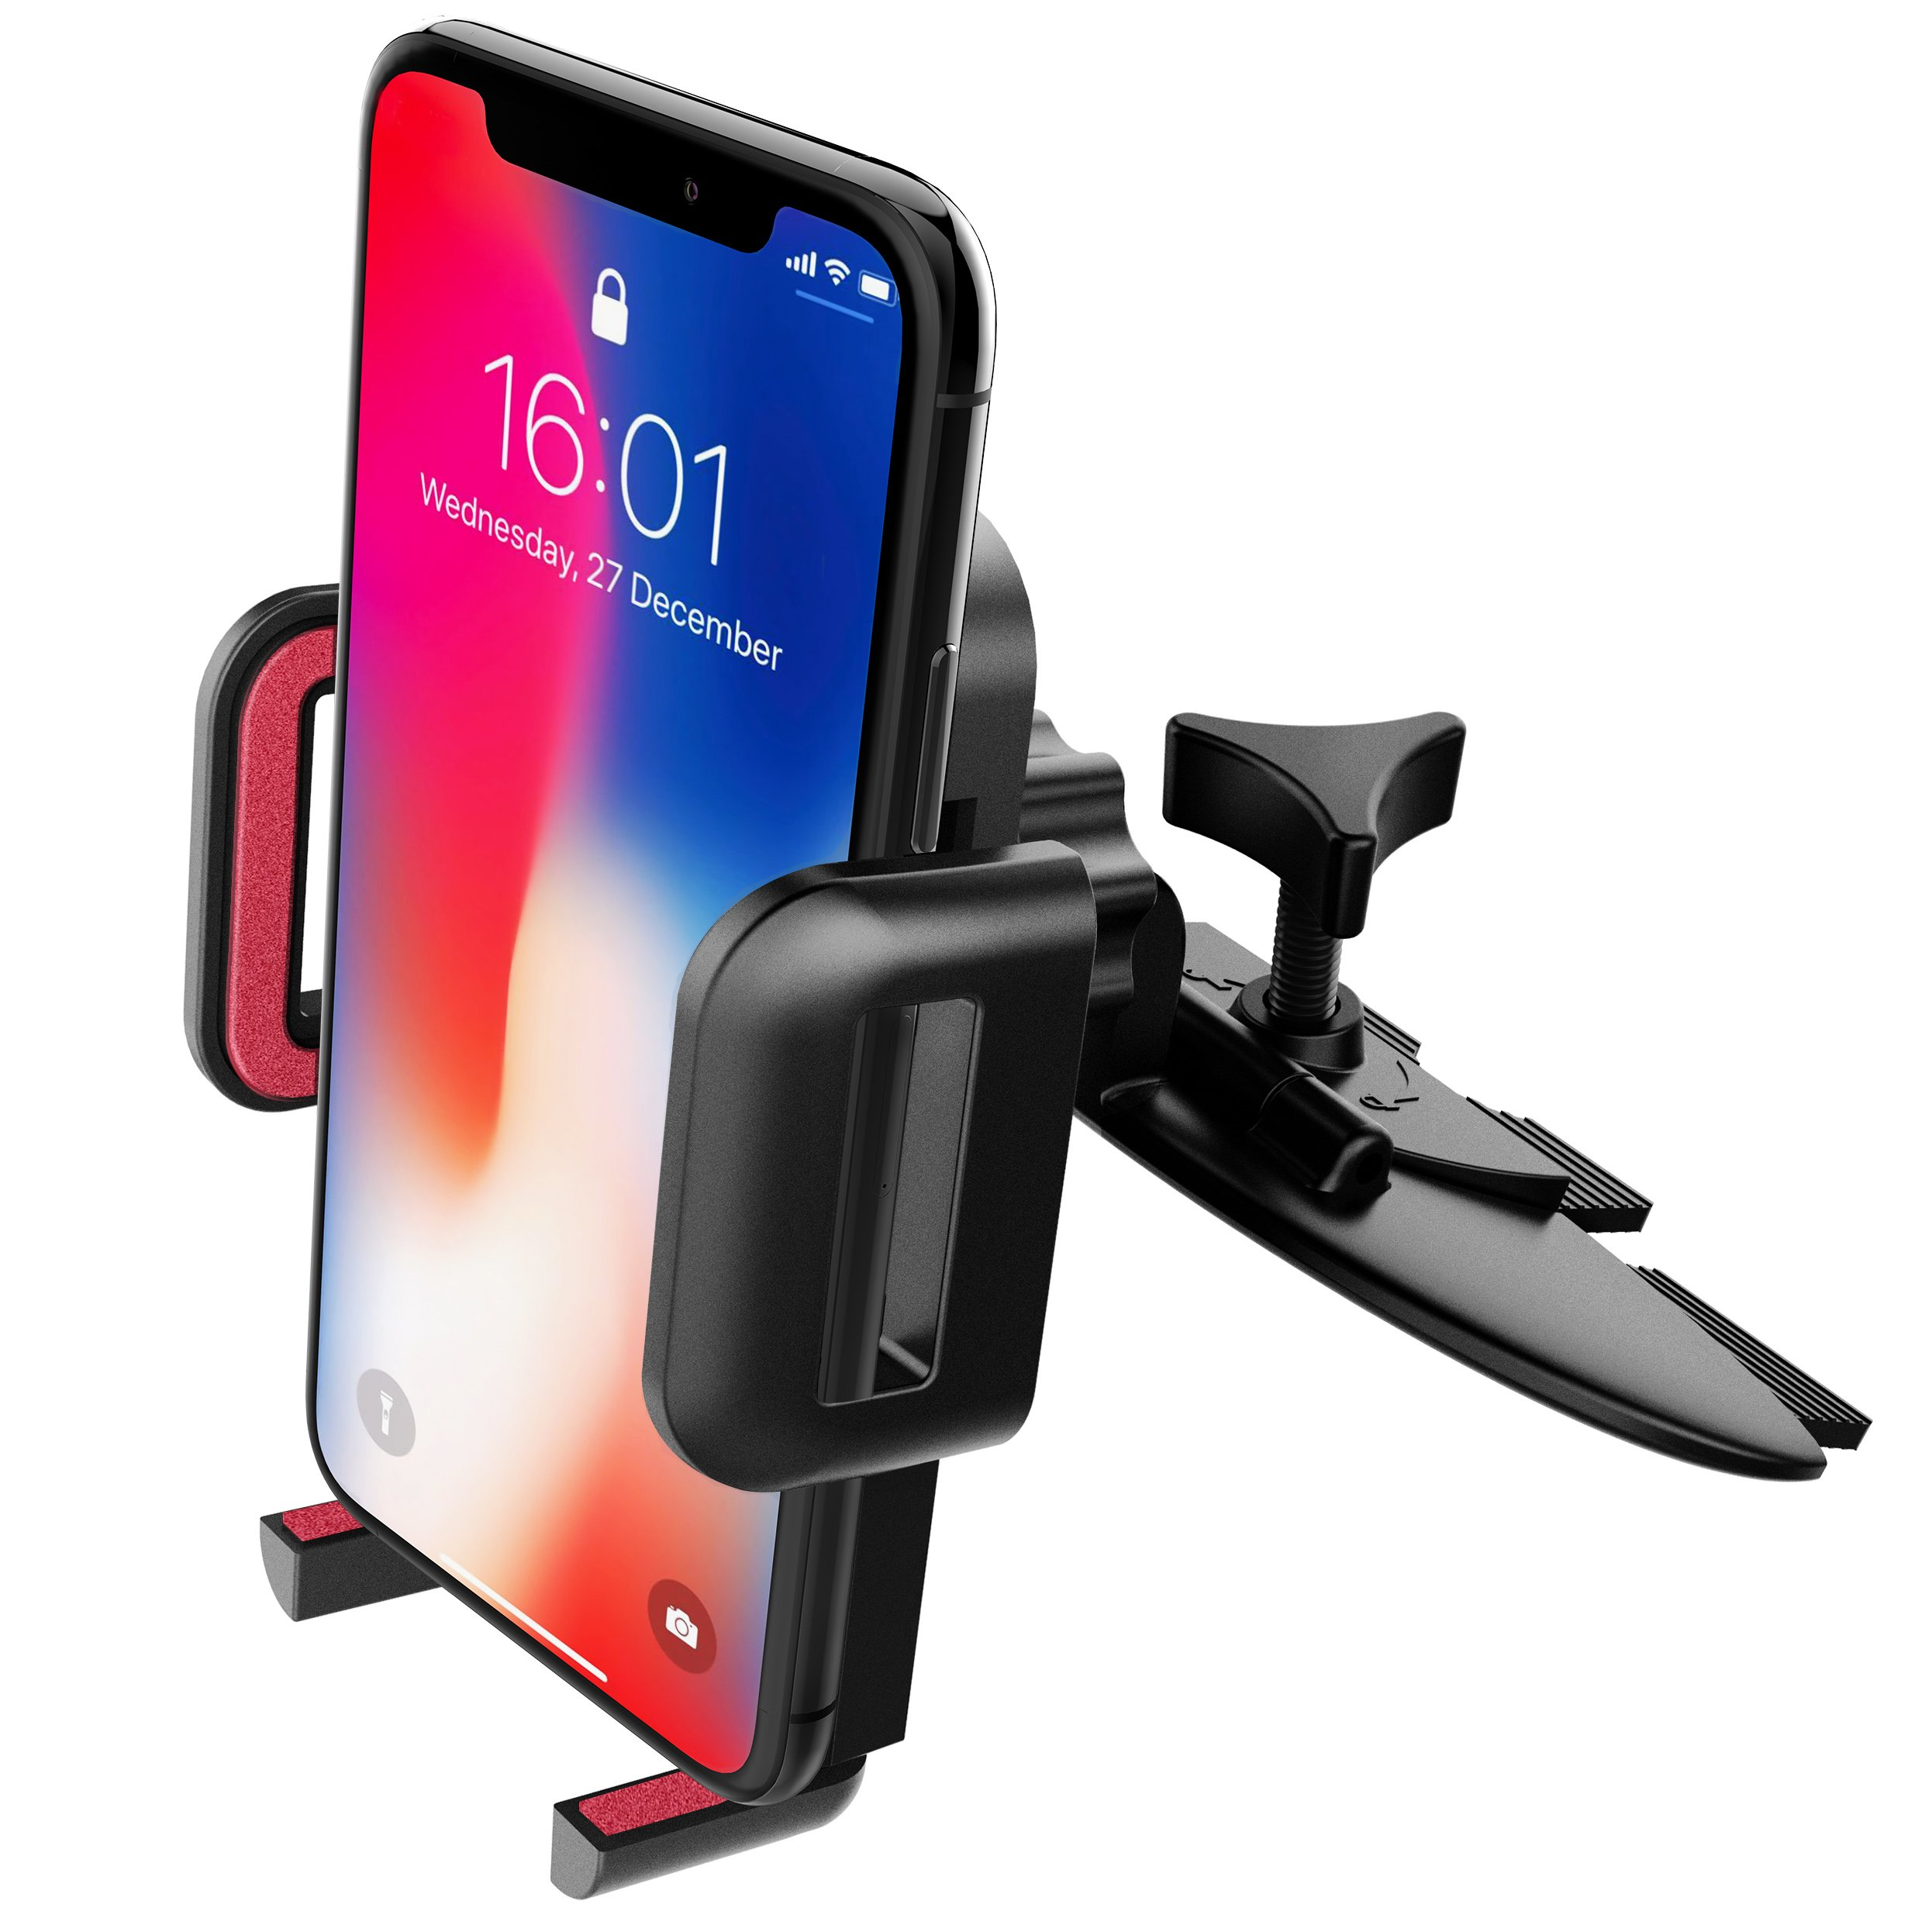 CD Slot Phone Holder, Mpow Universal Car Phone Mount 360° Rotating Car Holder with One-Click Release Button Cradle for iPhone X/10 8 7plus 6s 5 HUAWEI Nexus 5X 6 6P Samsung S9 LG Sony and Other product image